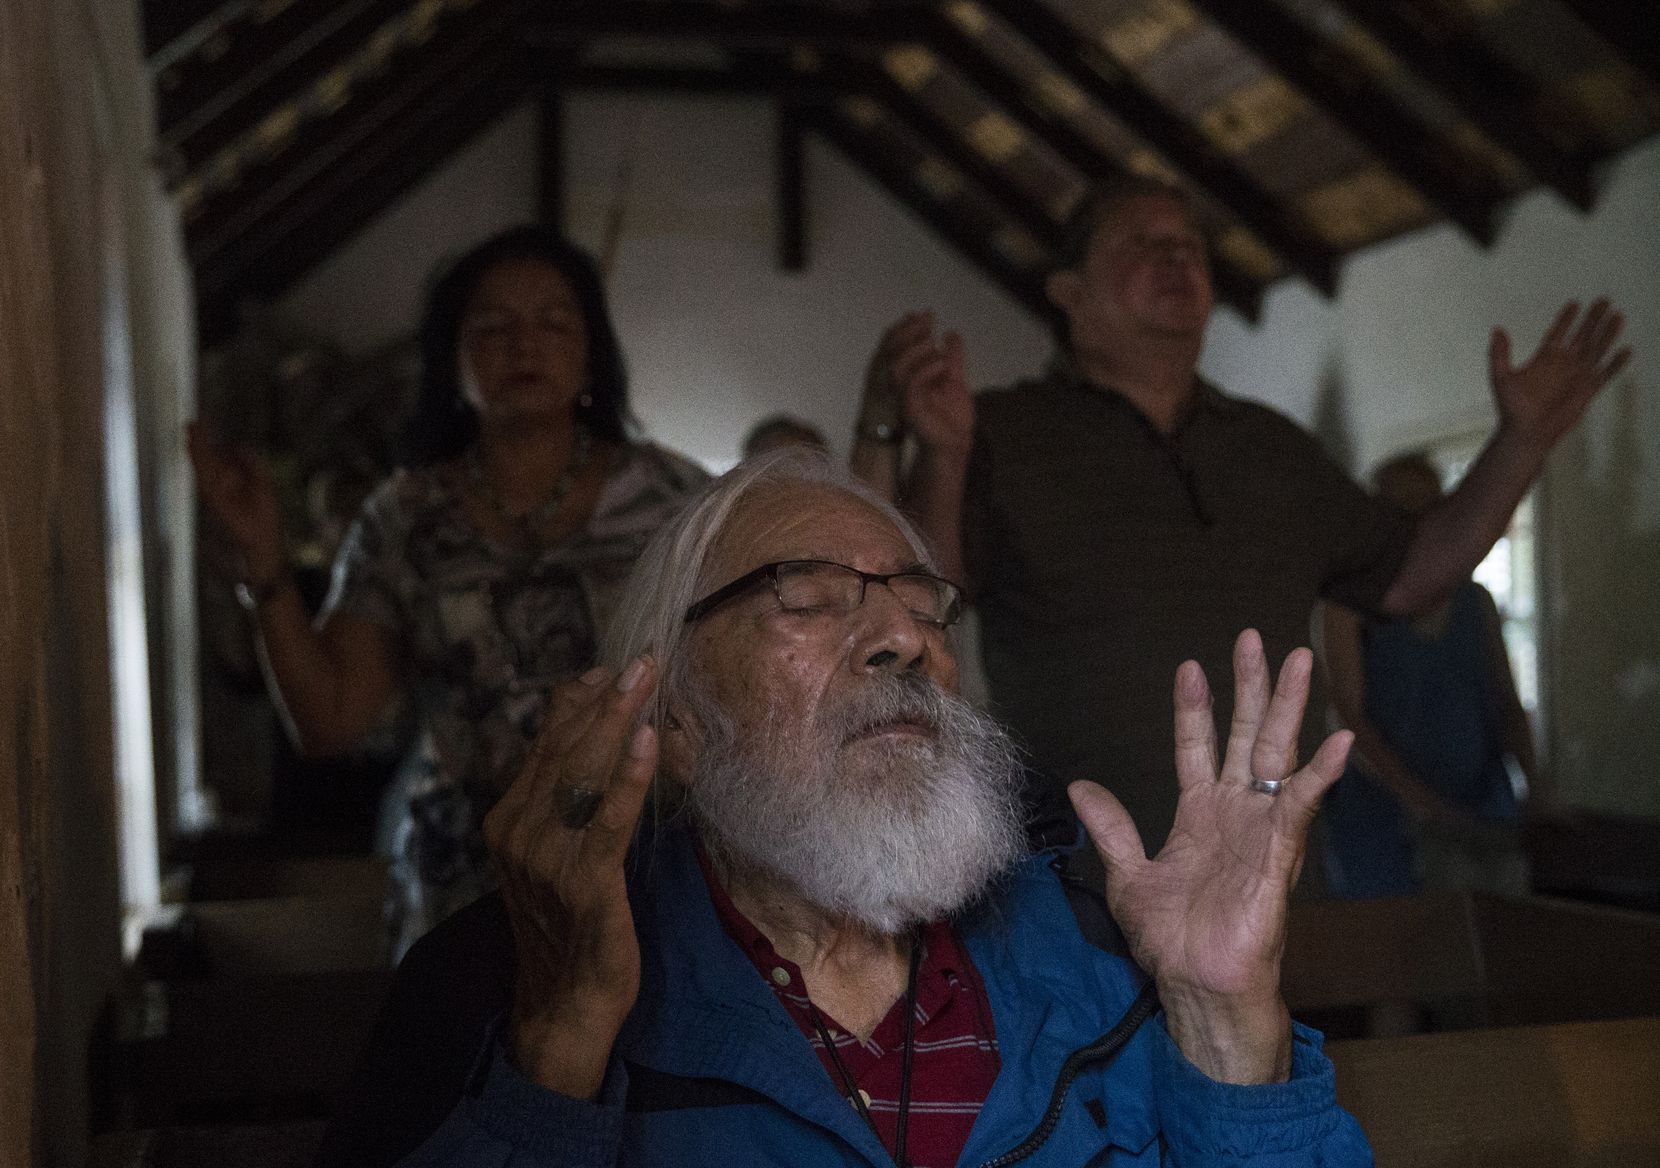 """Jose Ramirez, a longtime attendee of Mass at La Lomita, holds up his hands in prayer during a sunrise Mass at the chapel near Mission, Texas. """"I've been coming here as long as, well, I guess when they were attacking Pearl Harbor,"""" Ramirez said. """"I hope they don't build a wall around this place. It means so much to so many people."""""""